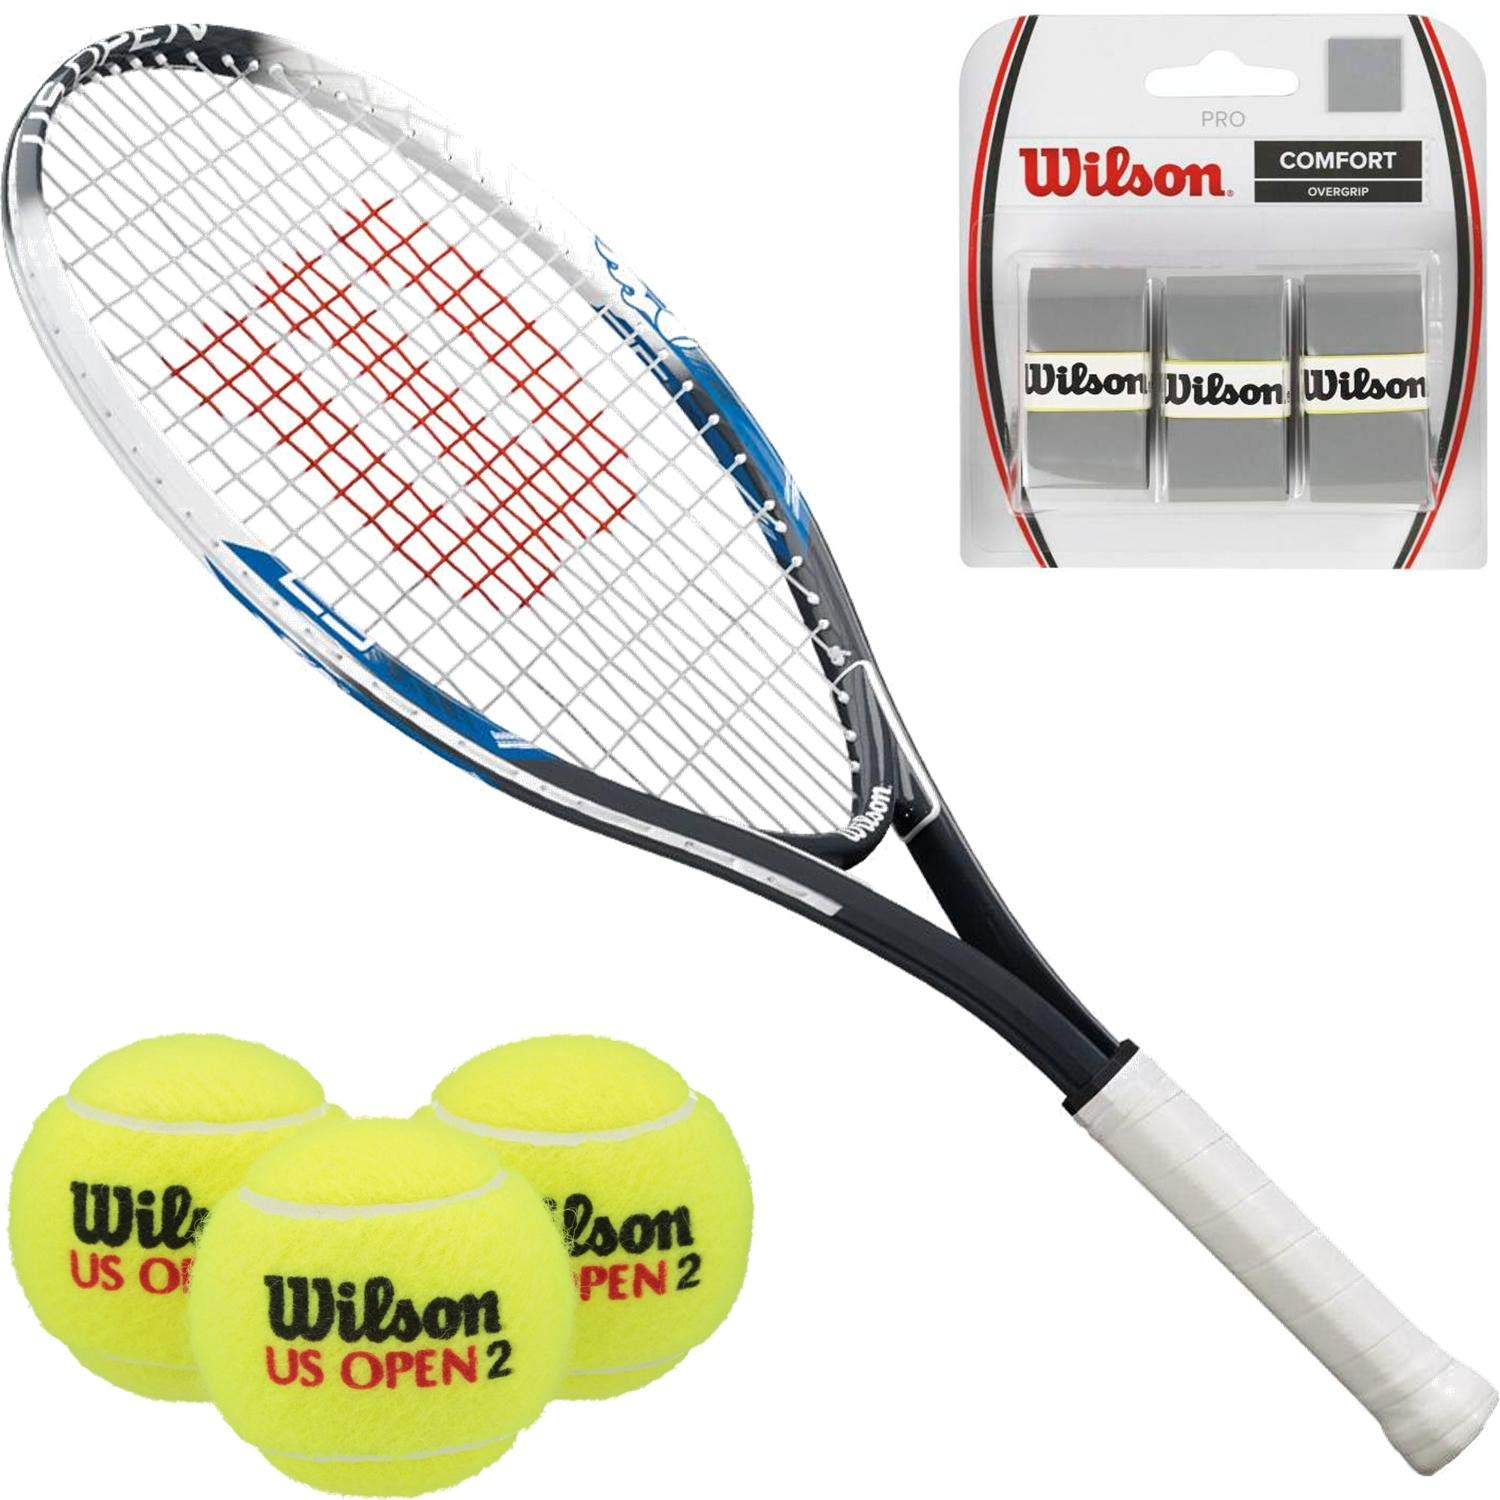 Wilson U.S. Open 25 Inch Junior Tennis Racquet Starter Kit or Set Bundled with a Can of U.S. Open All-Court Balls and a 3-Pack of Black Overgrips by Do It Tennis (Image #1)